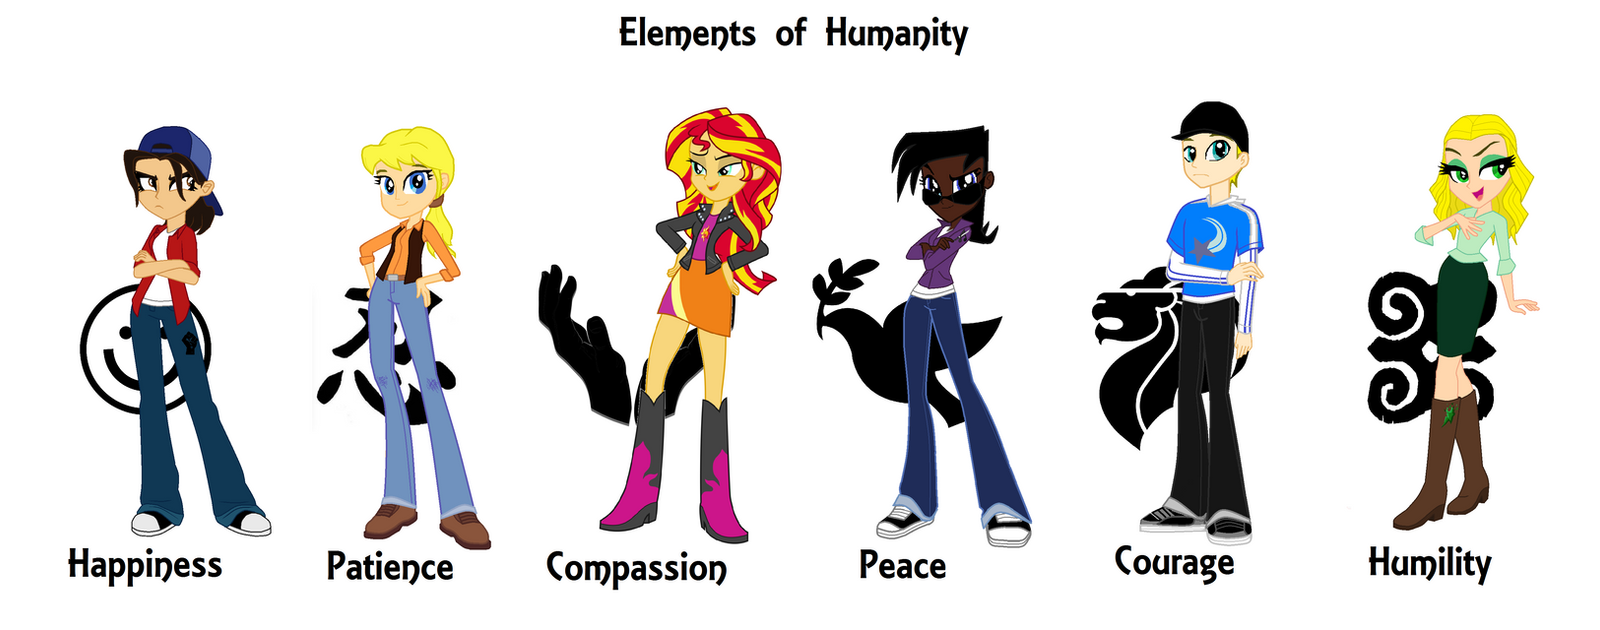 The Human-6: Elements of Humanity by NuvaPrime on DeviantArt